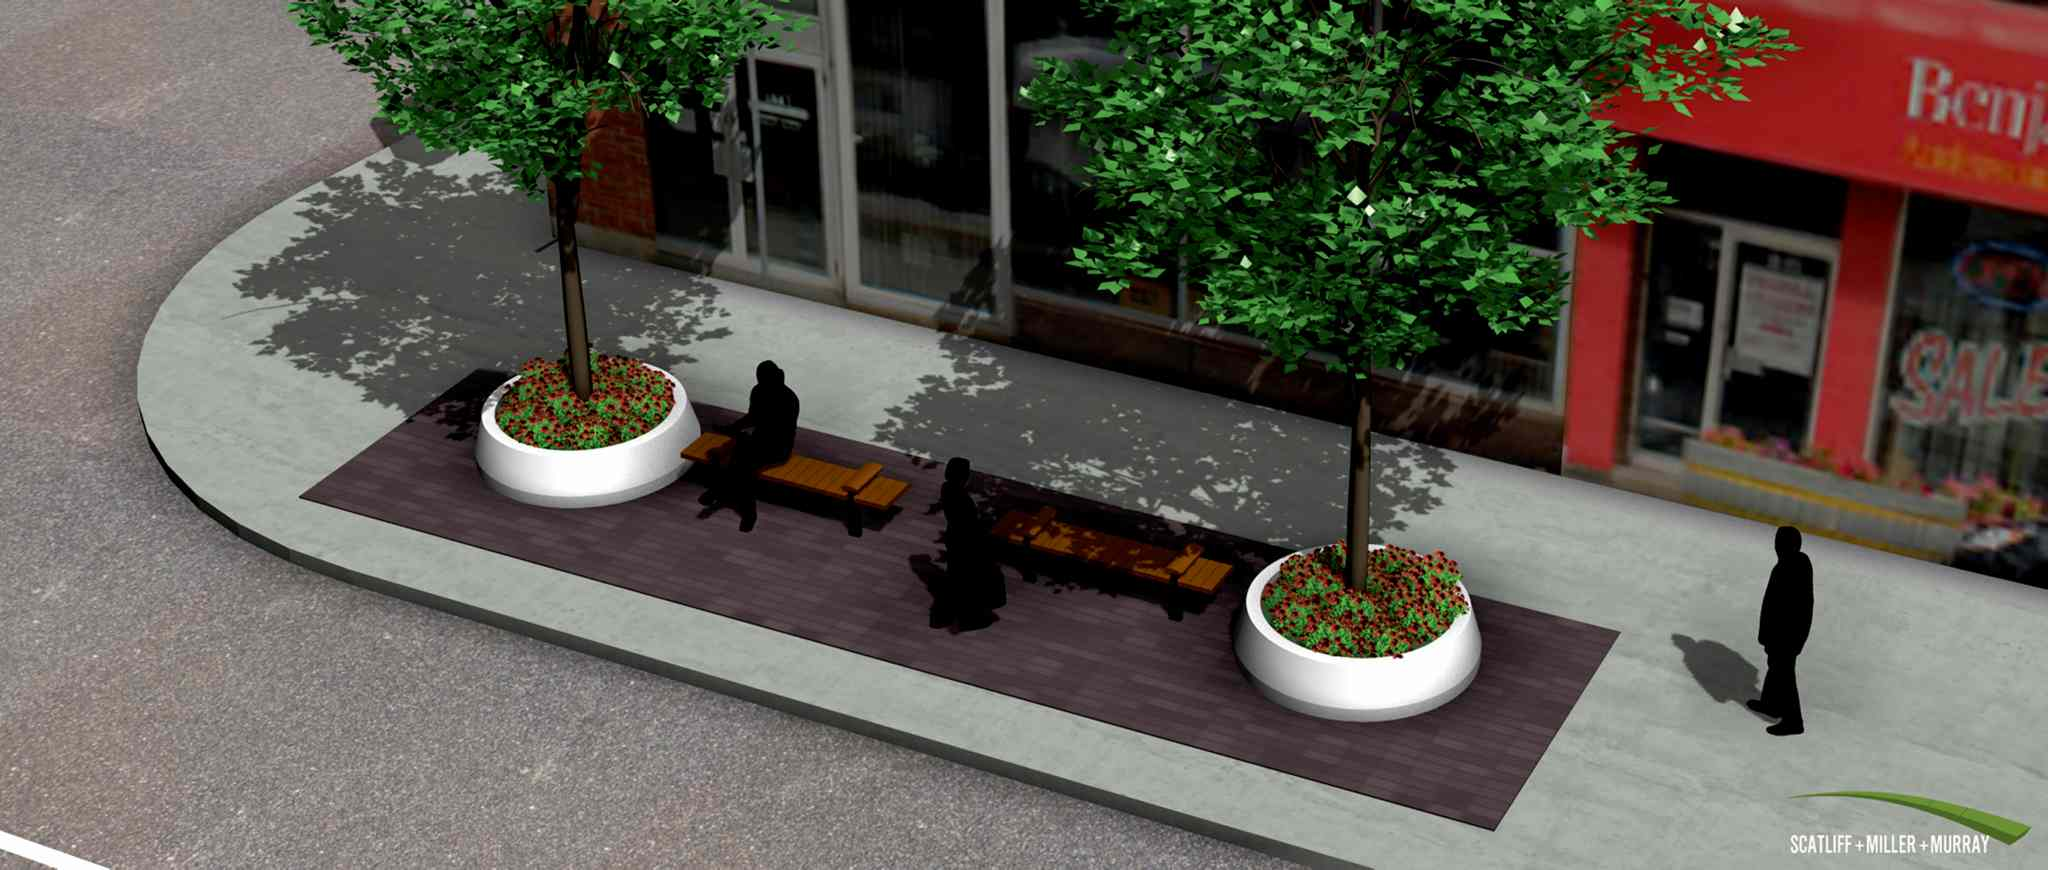 Bryan Metcalfe, executive director of the St. James Village BIZ, is working with a team on the Living Canopy Streetscape Project, which consists of 10 outdoor plazas for the St. James area. The above image is an example of one of the plazas.